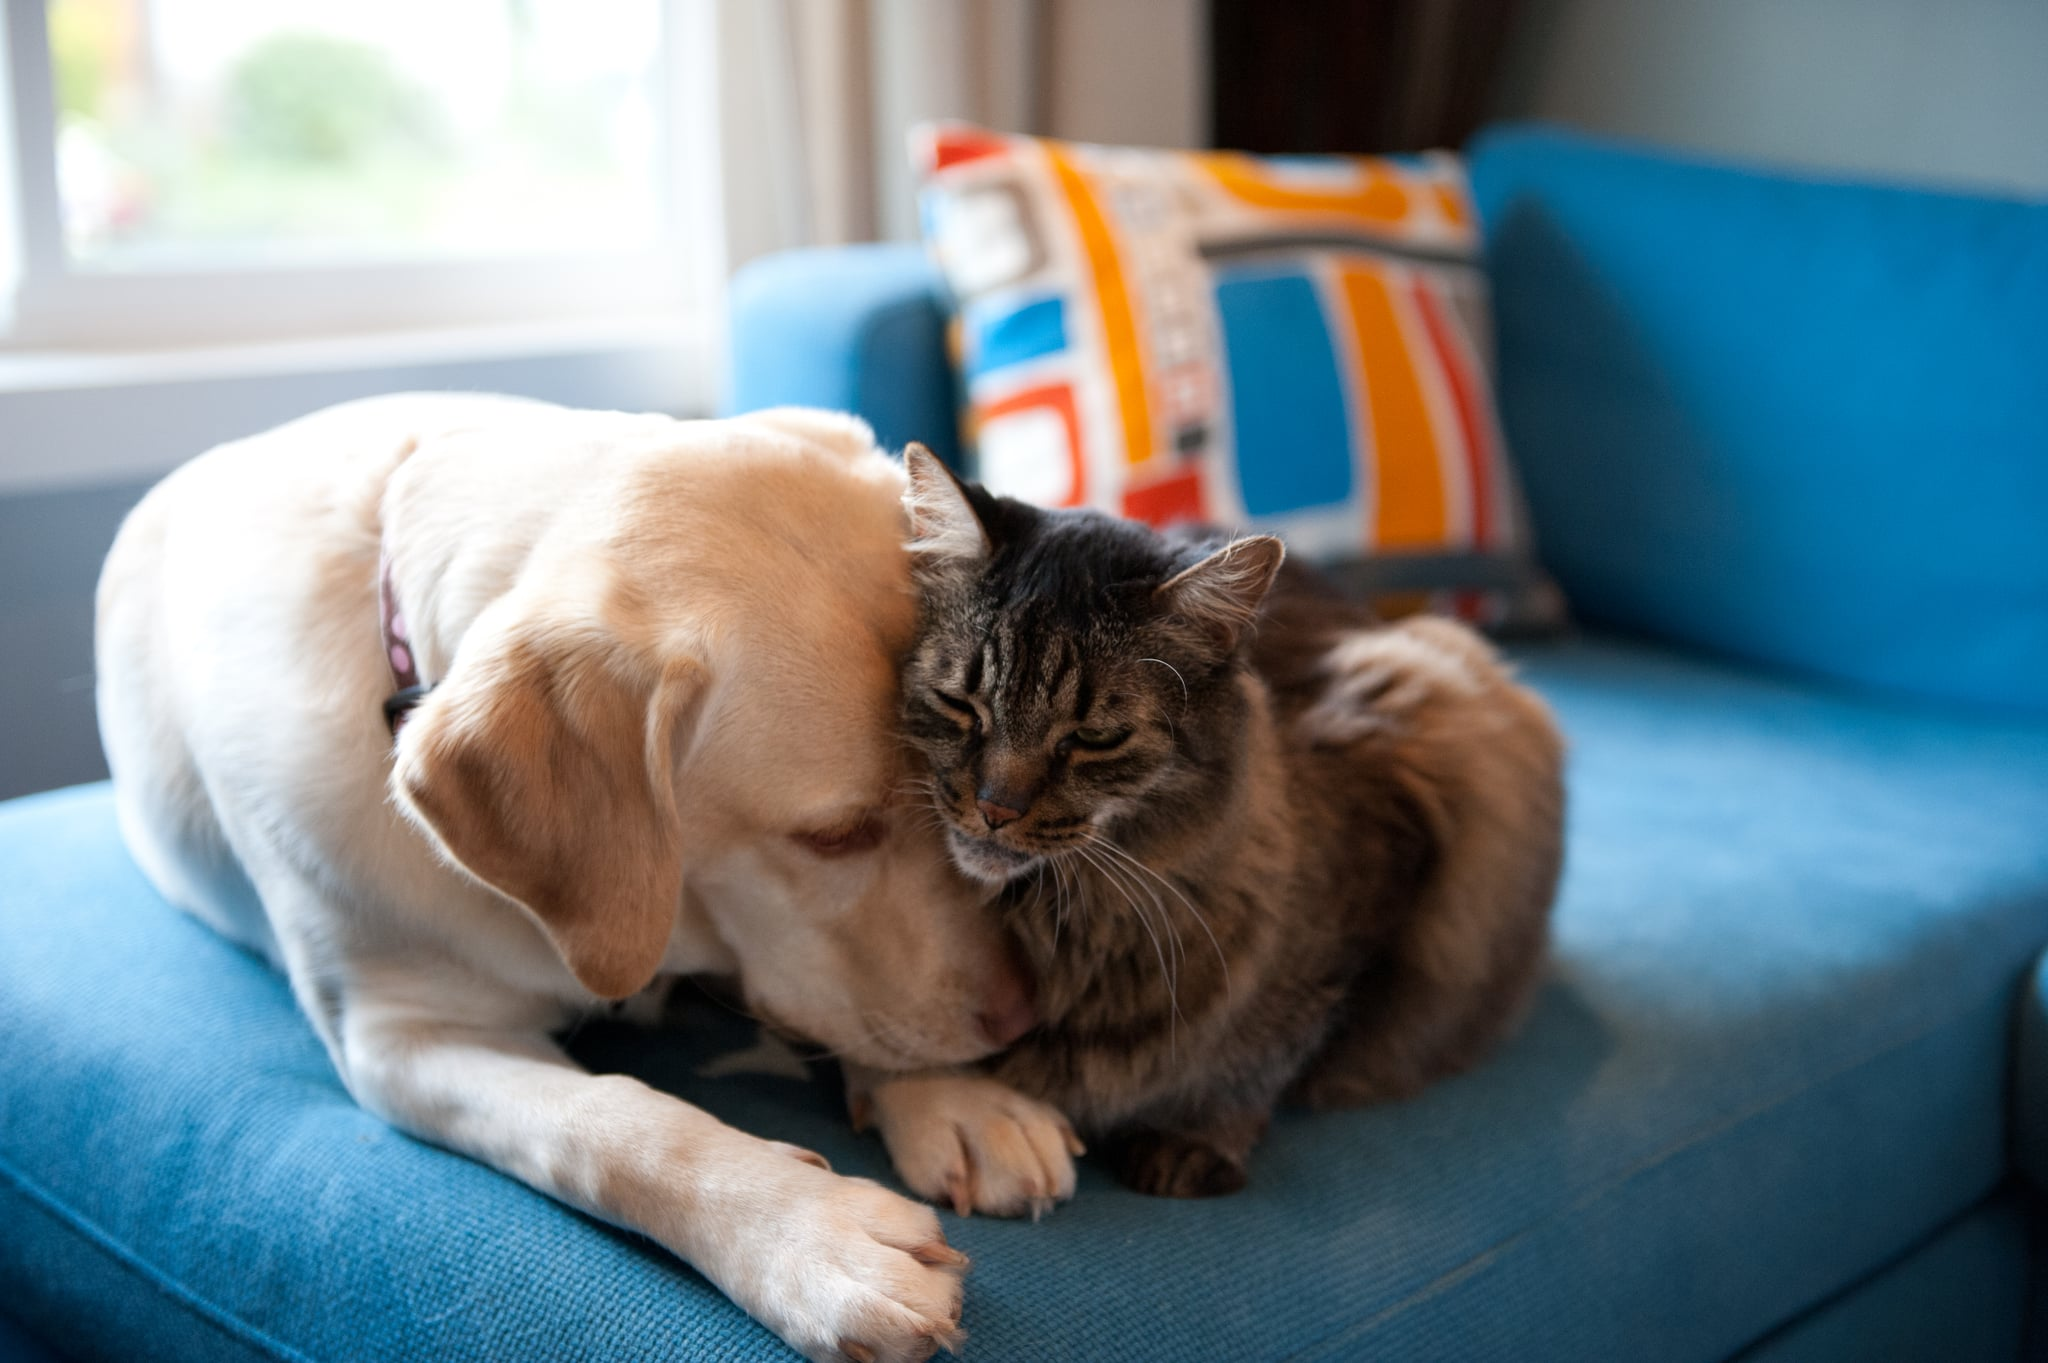 Yellow Labrador retriever and Maine coon cat cuddling together on a blue couch.